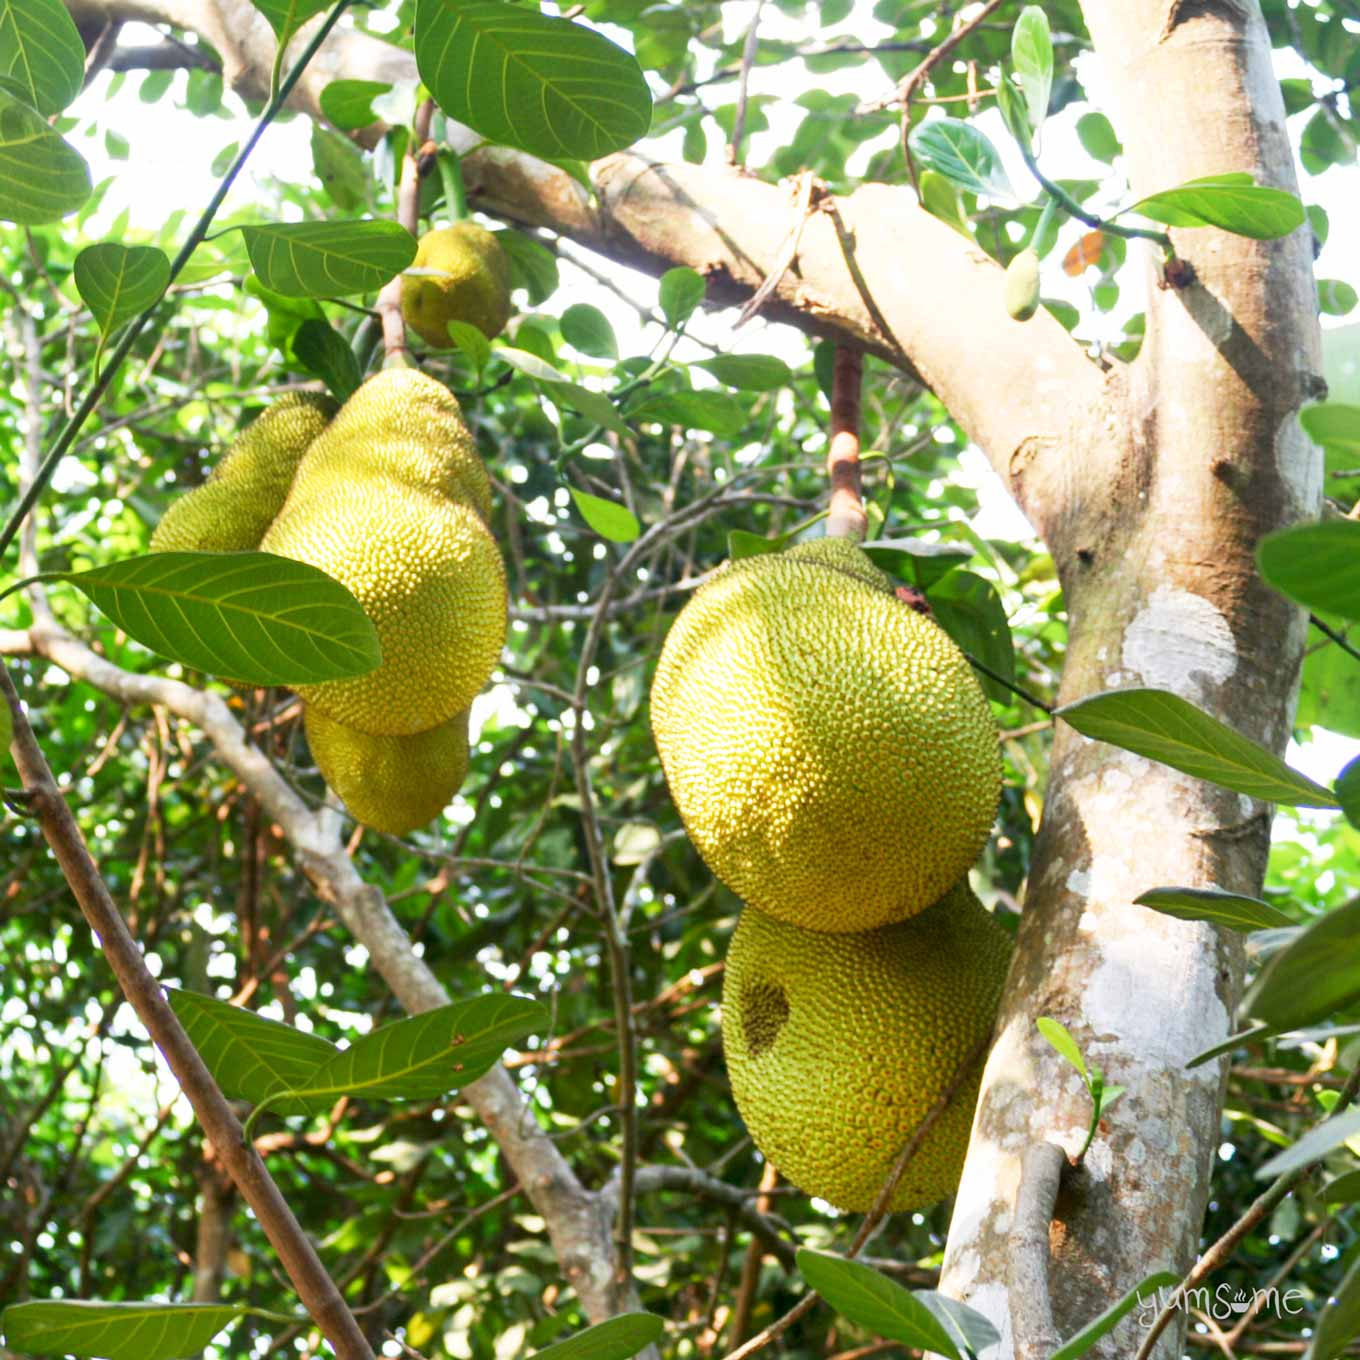 Close-up of jackfruit growing on a tree in Doi Saket, Thailand | yumsome.com